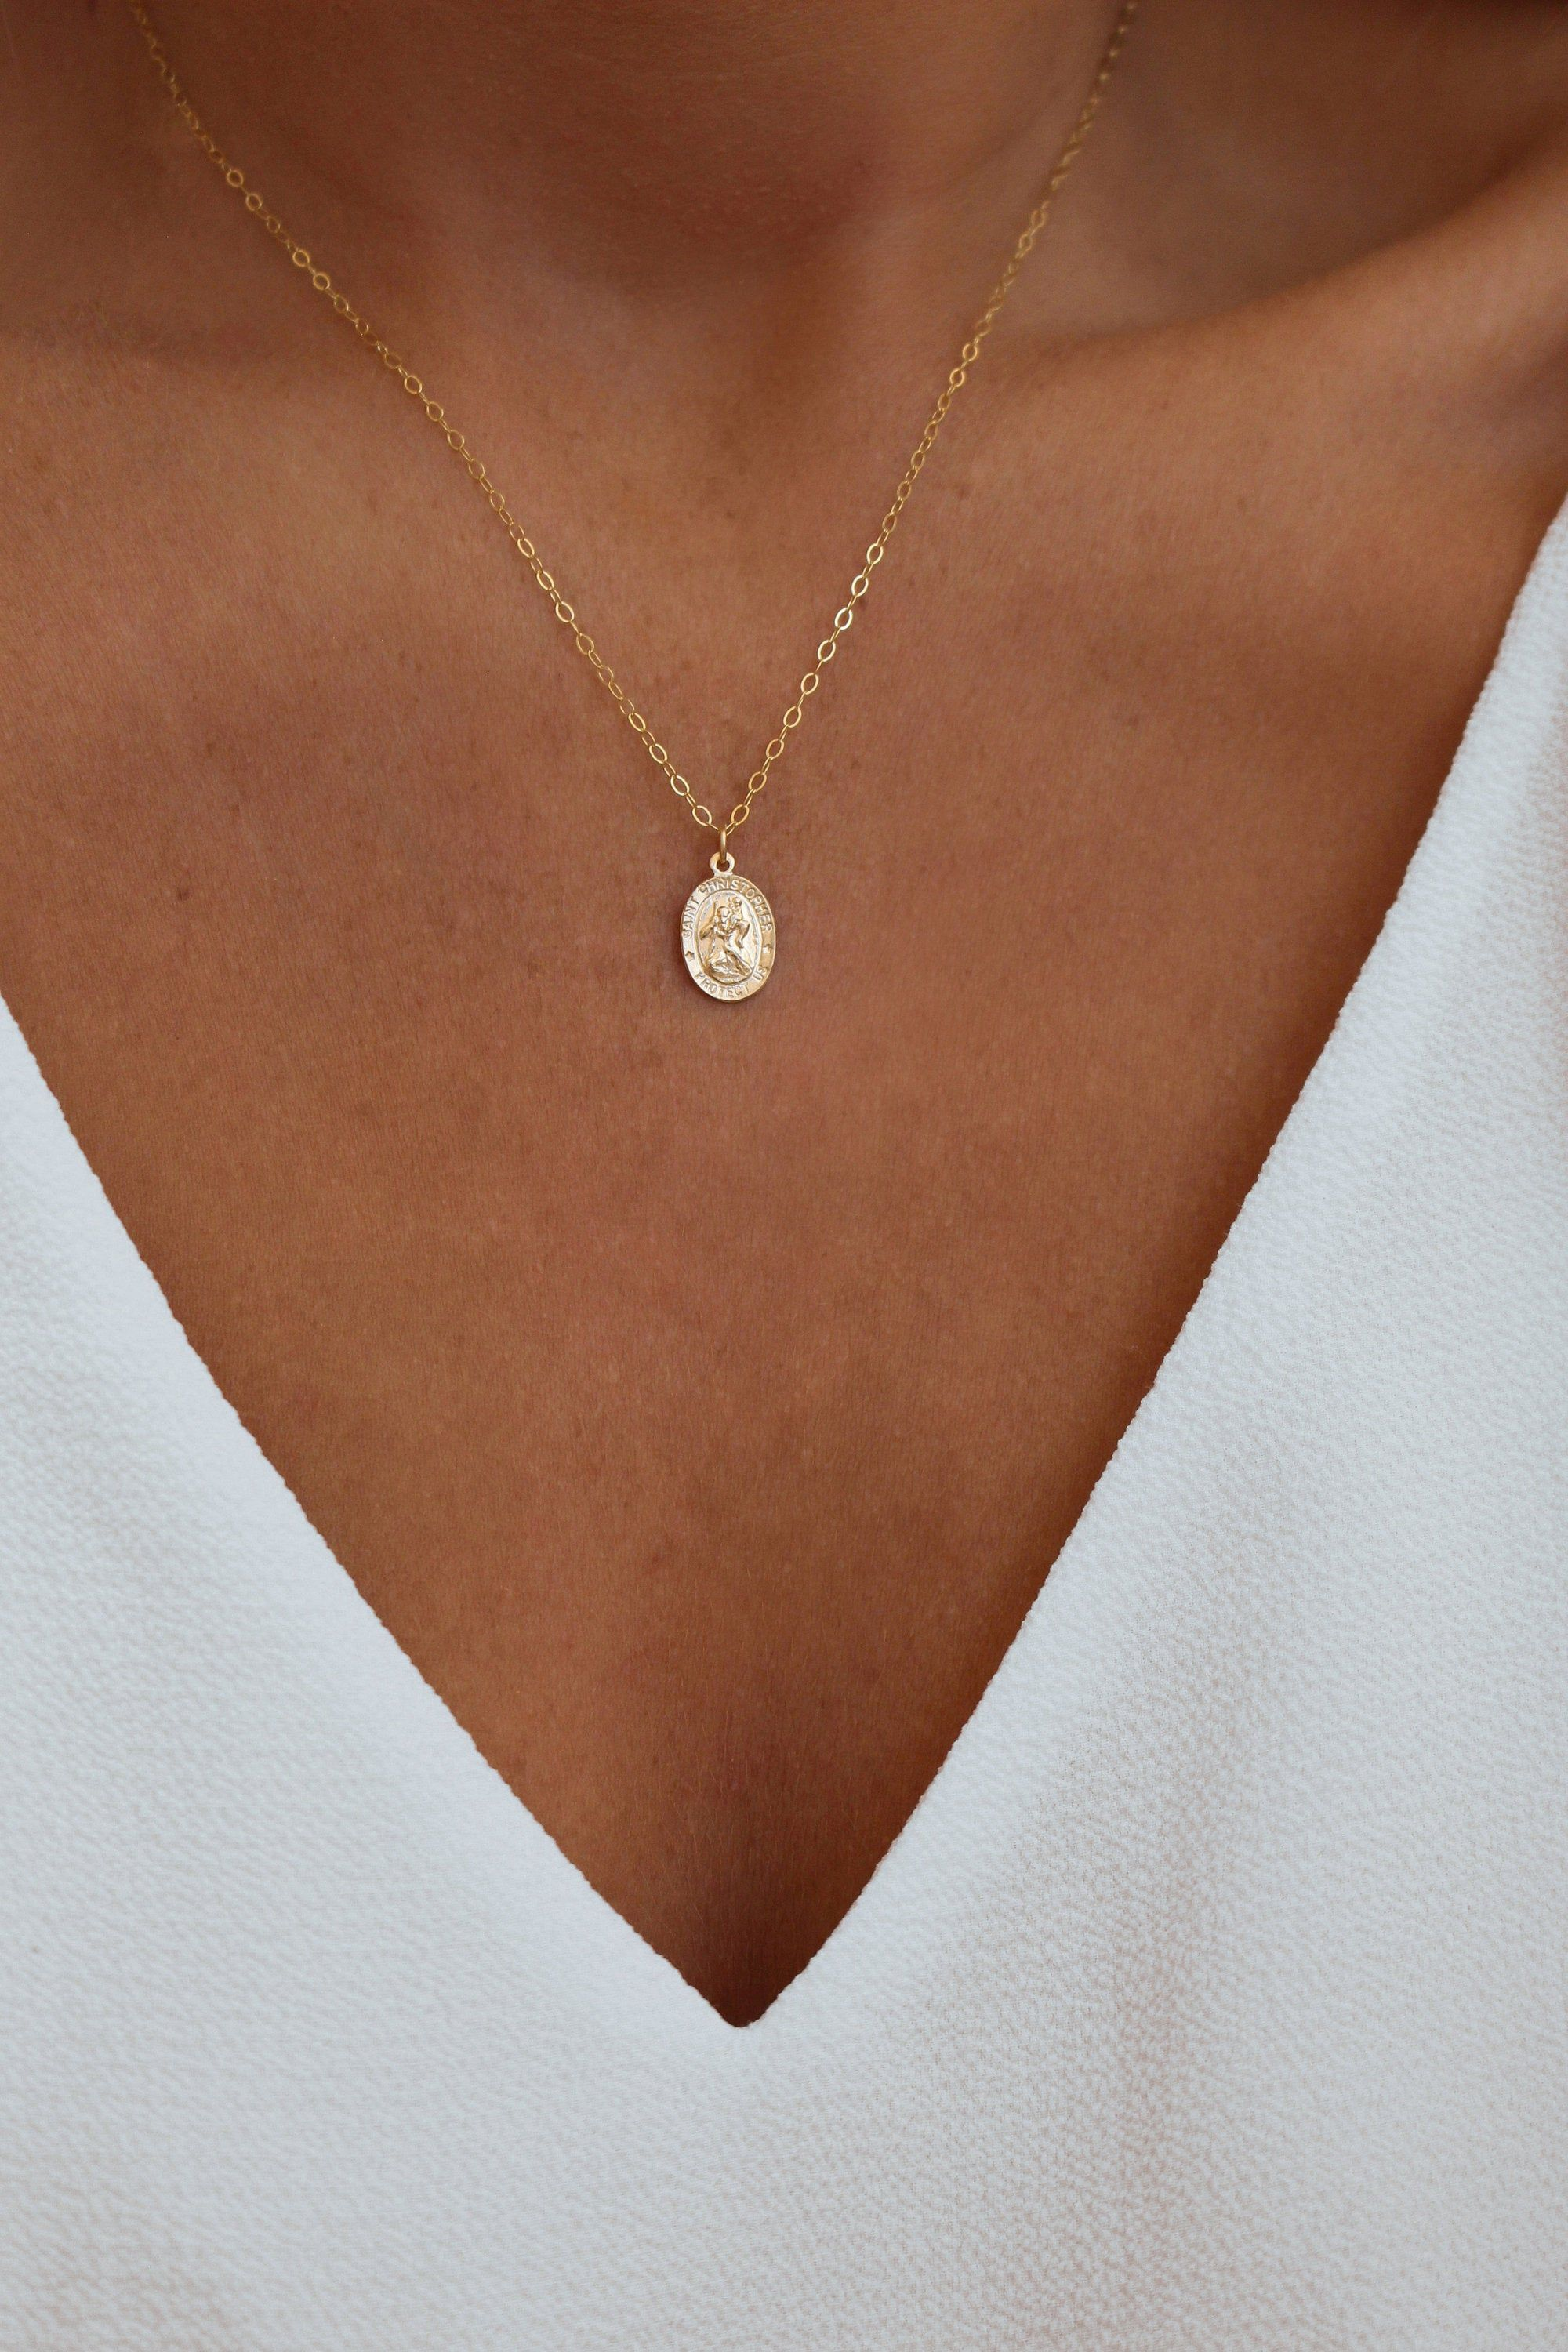 25 Elegant and Gorgeous Necklace in 2020